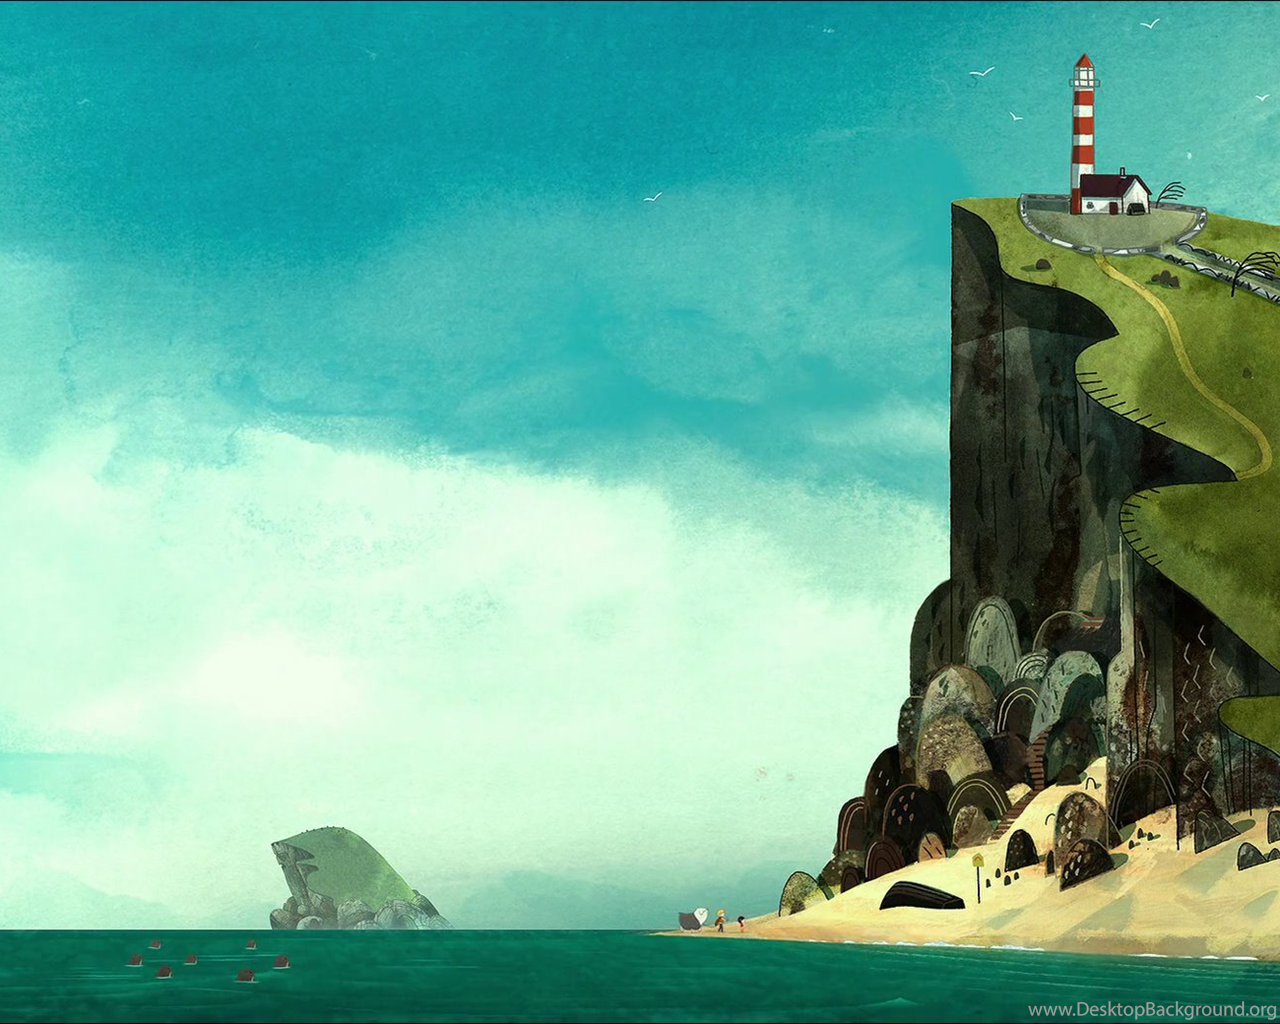 Song Of The Sea Wallpapers Album On Imgur Desktop Background